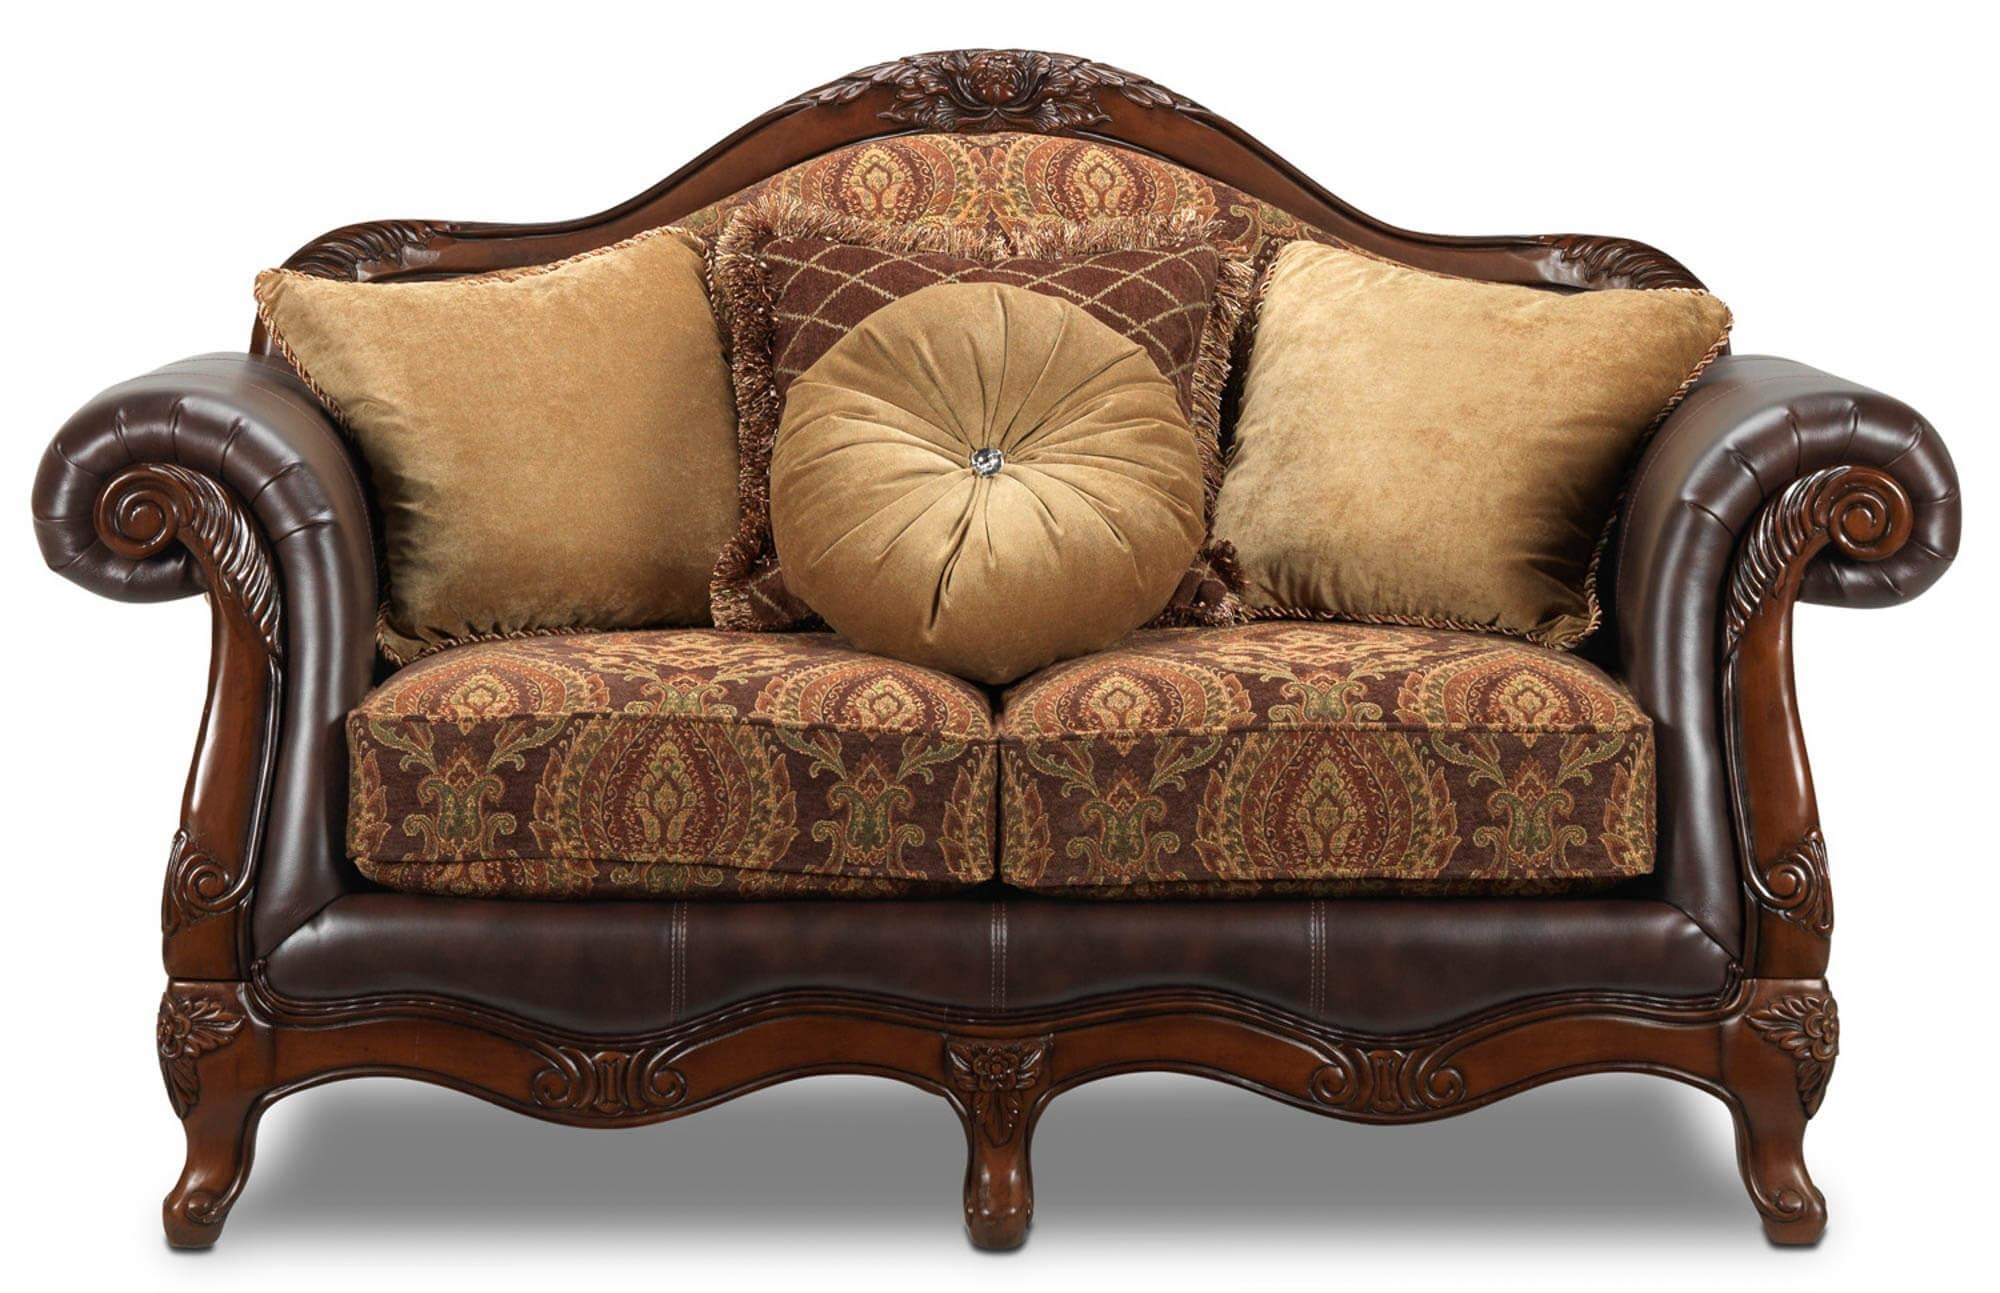 20 collection of vintage sofa styles sofa ideas Antique loveseat styles